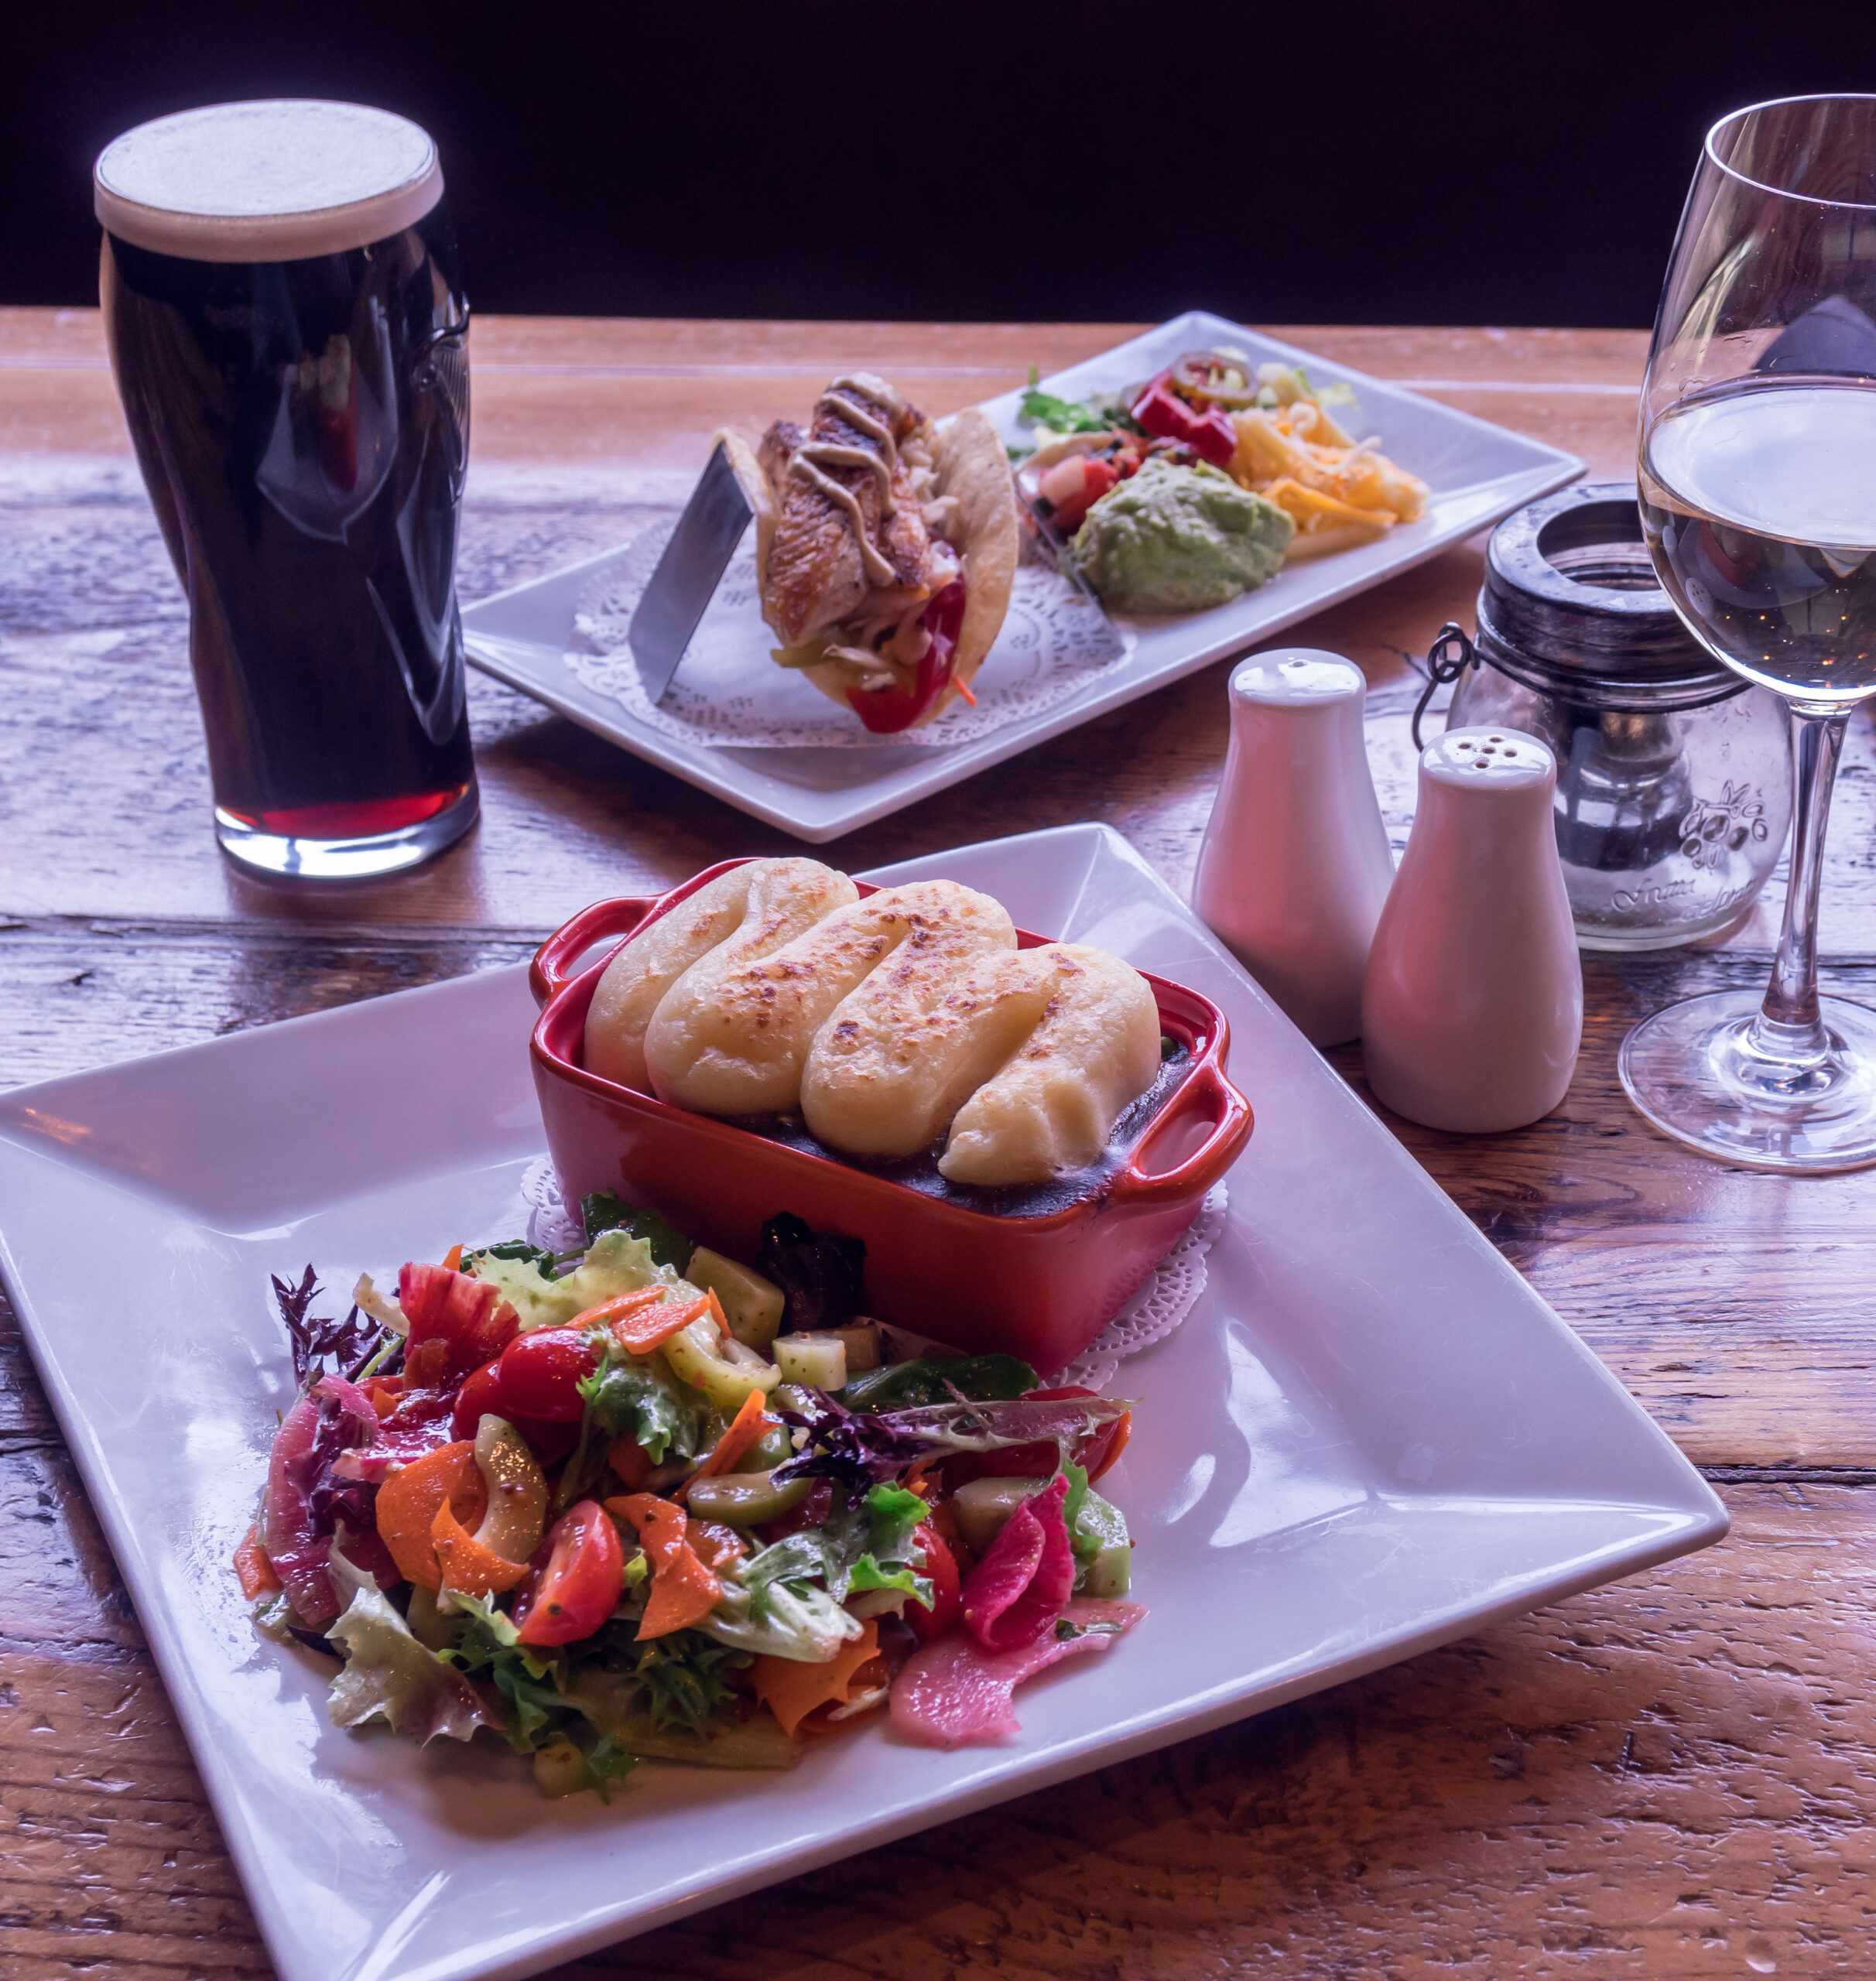 house shepherds pie with fresh green salad. fish taco with fixings. white wine and guinness